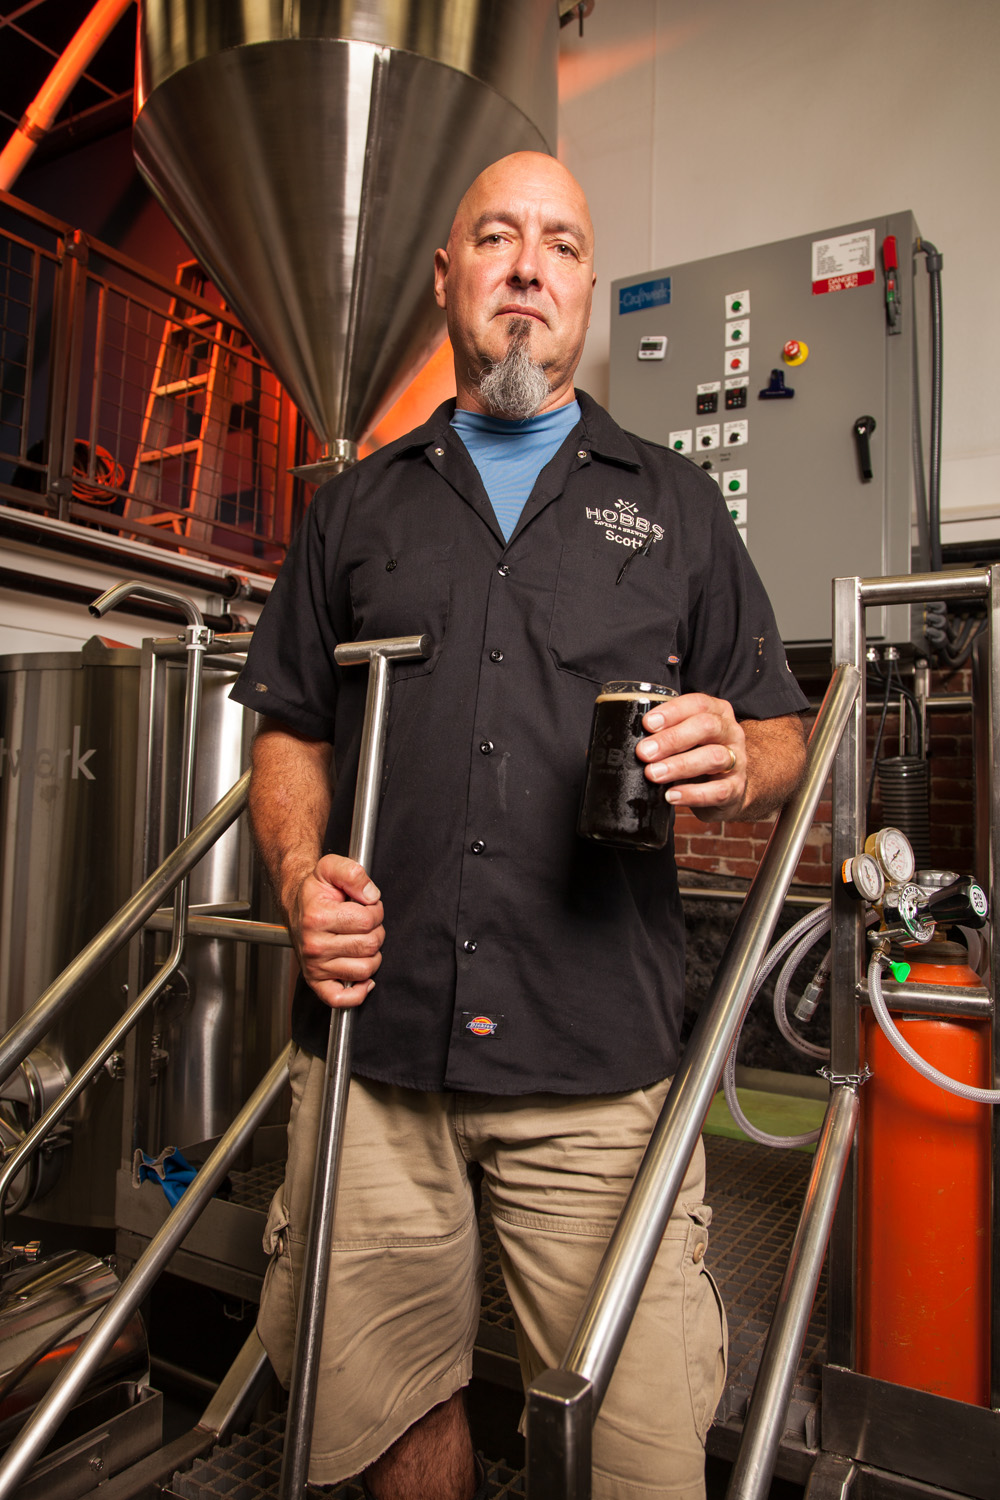 Scott Travis, Brewer at Hobbs Tavern and Brewery, West Ossipee, NH Established in 2014